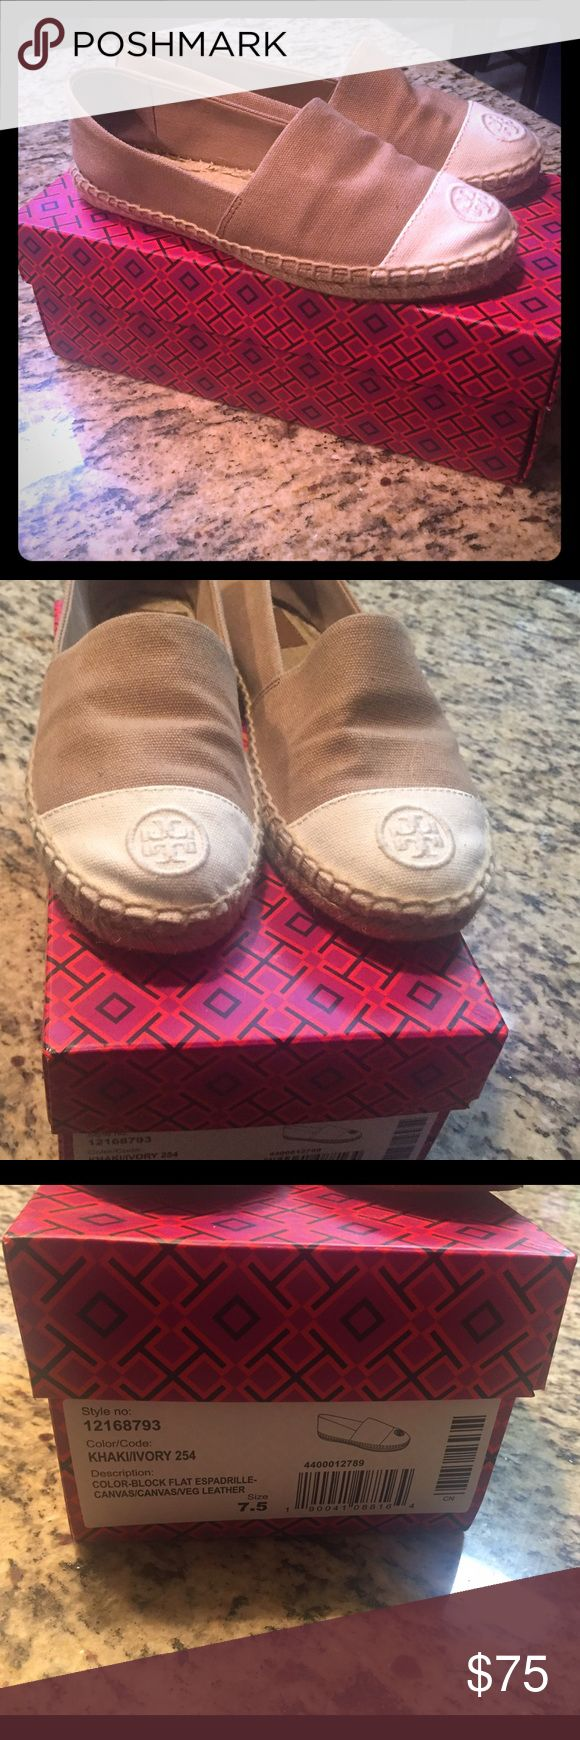 Tory burch espadrilles Perfect for spring and summer . Tan and cream espadrilles . Only worn twice, in great condition Tory Burch Shoes Espadrilles